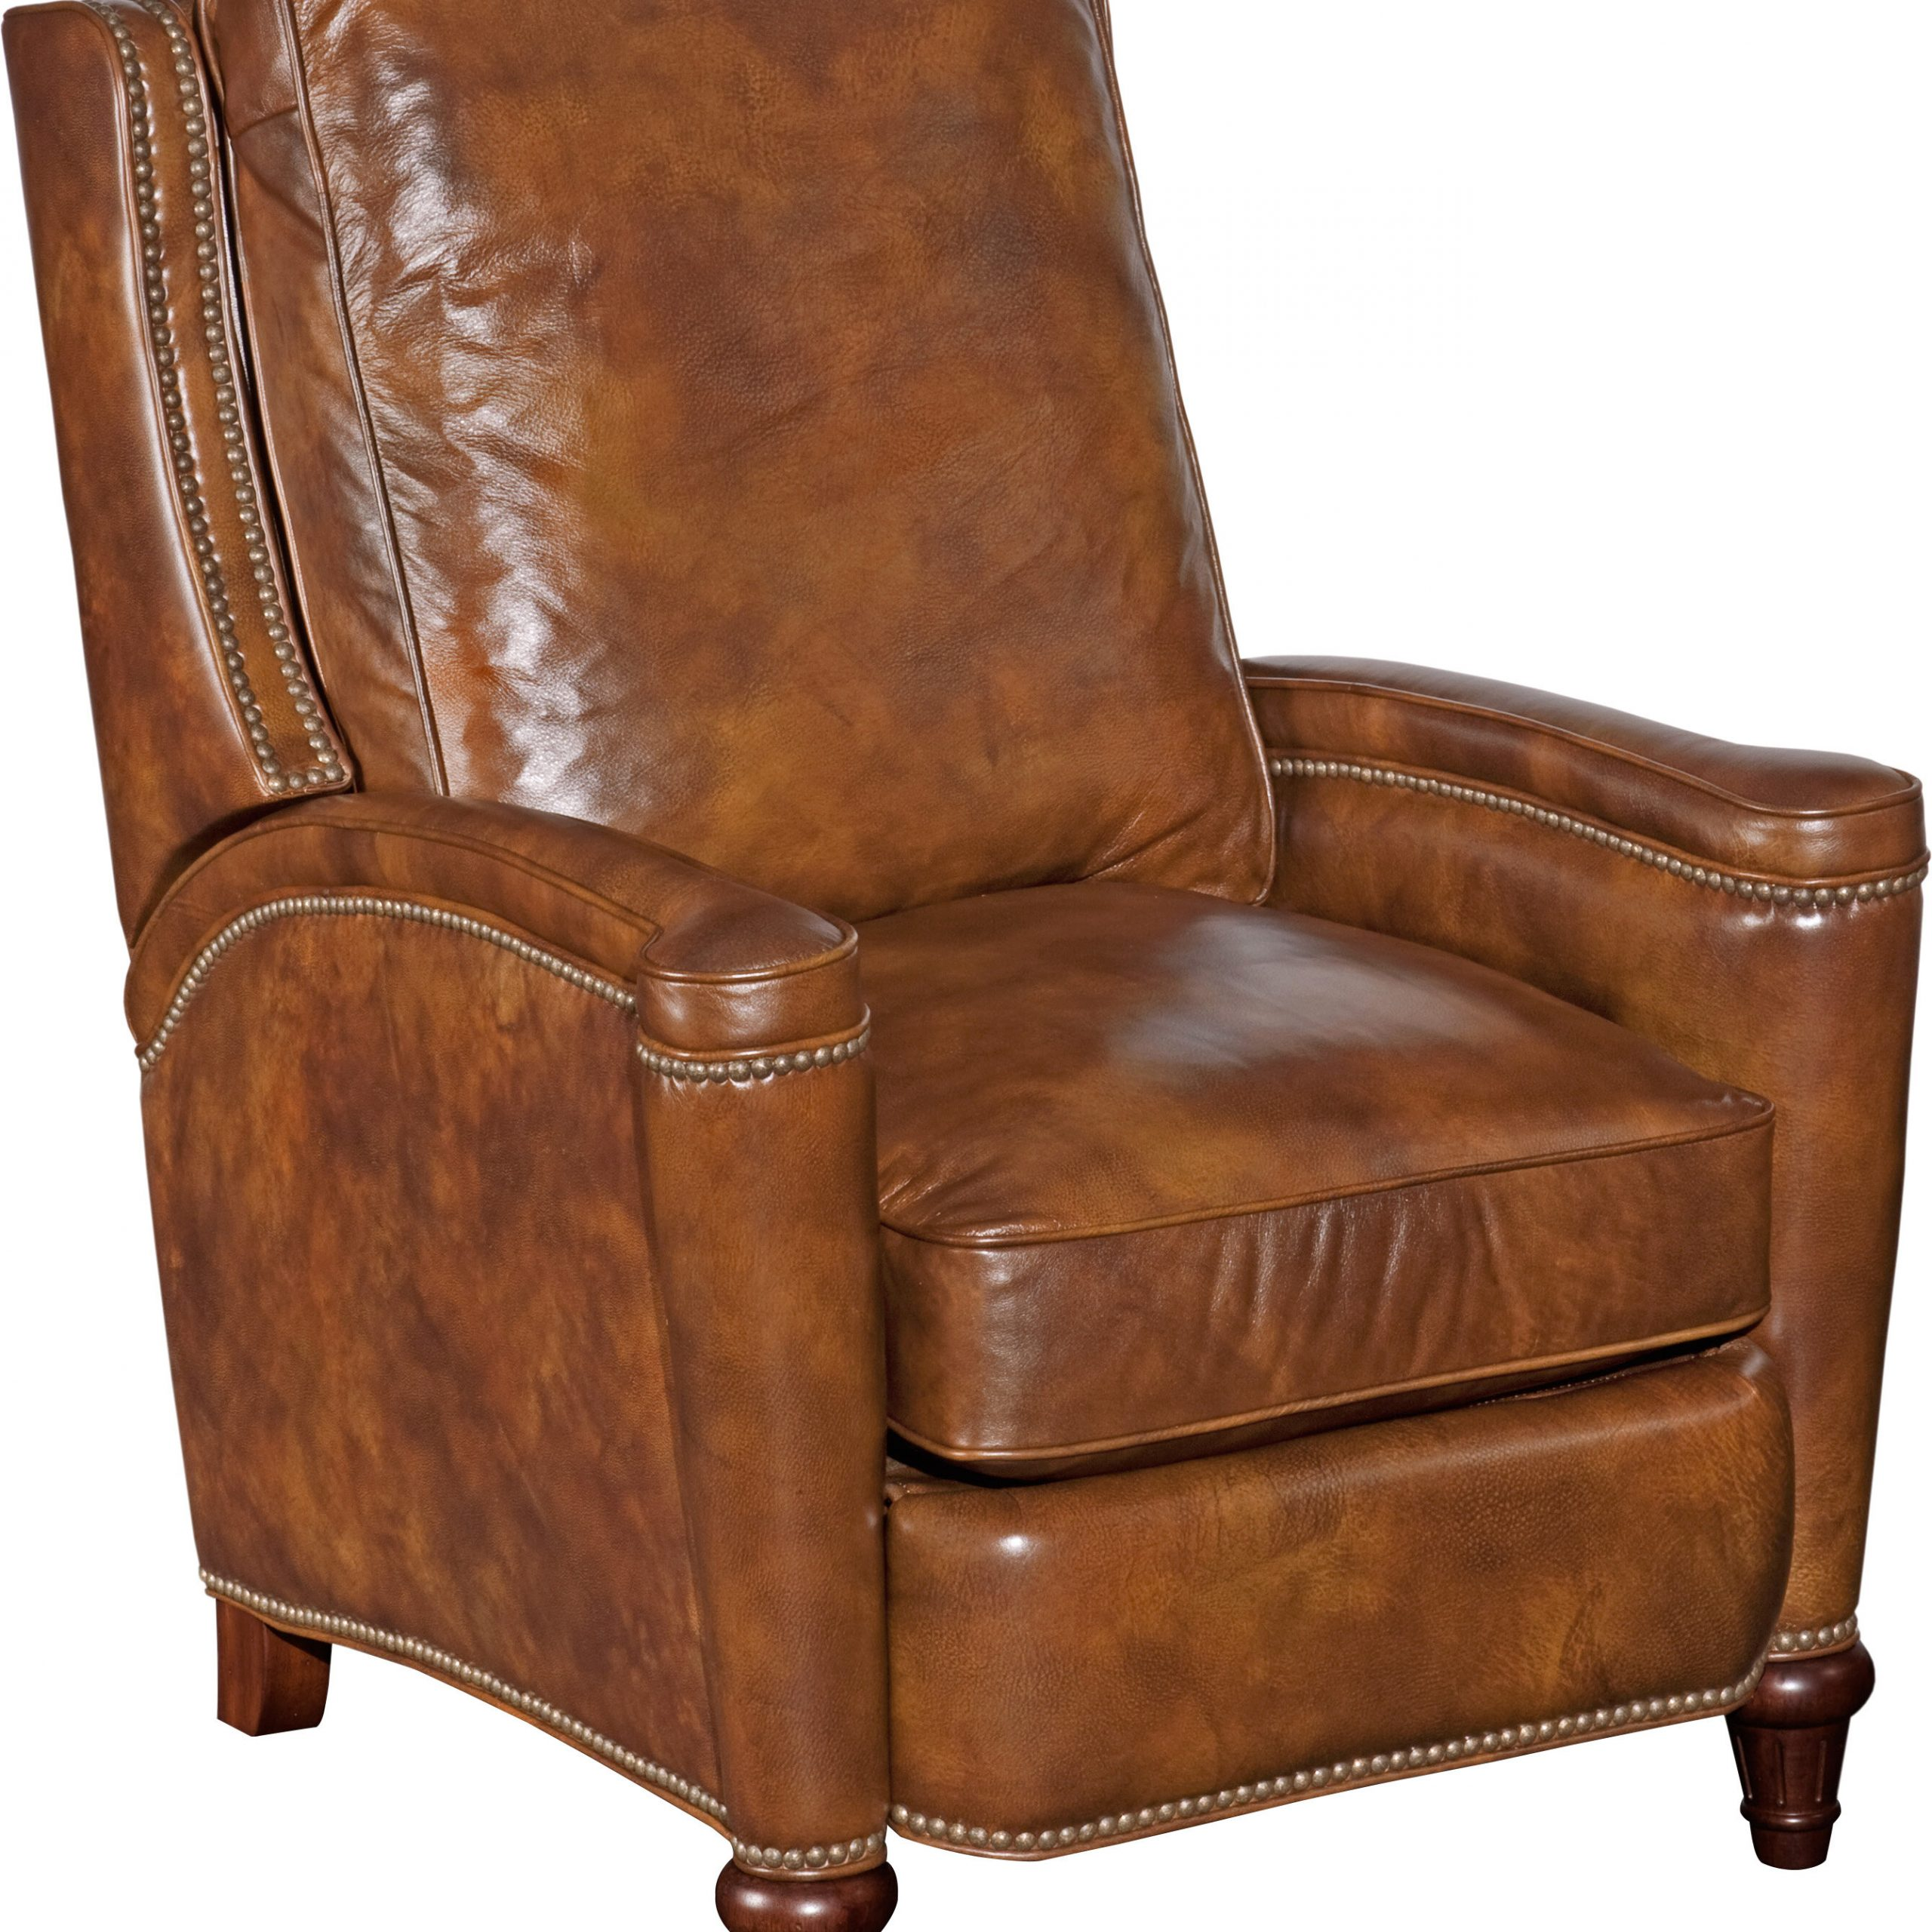 Leather Manual Recliner With Regard To Coomer Faux Leather Barrel Chairs (View 7 of 15)